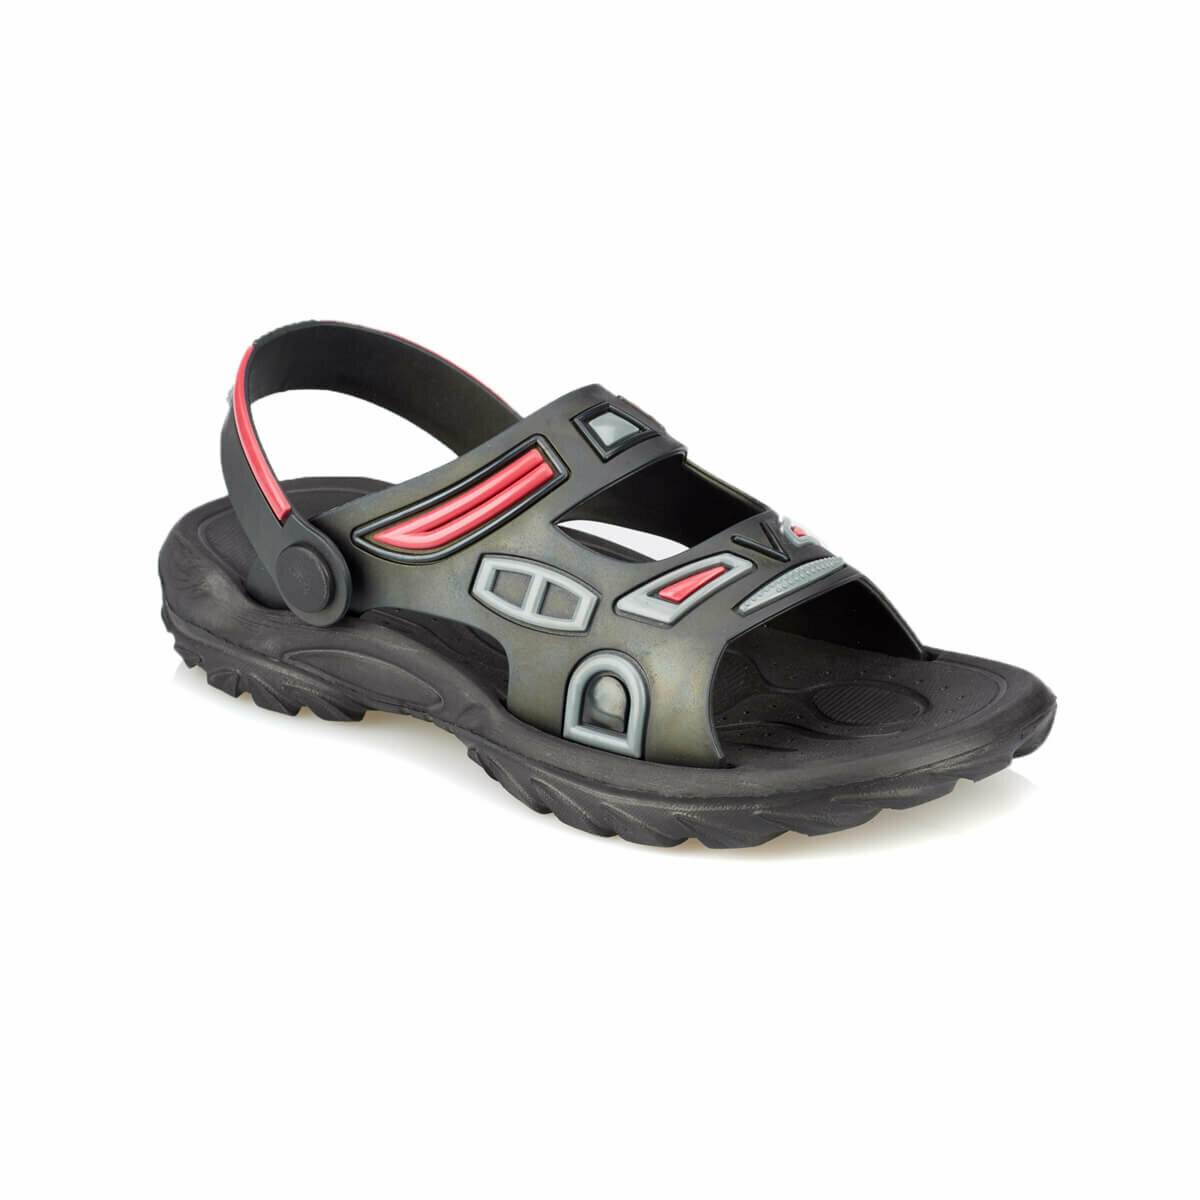 FLO HARLOW Black Male Child Sea Shoes KINETIX